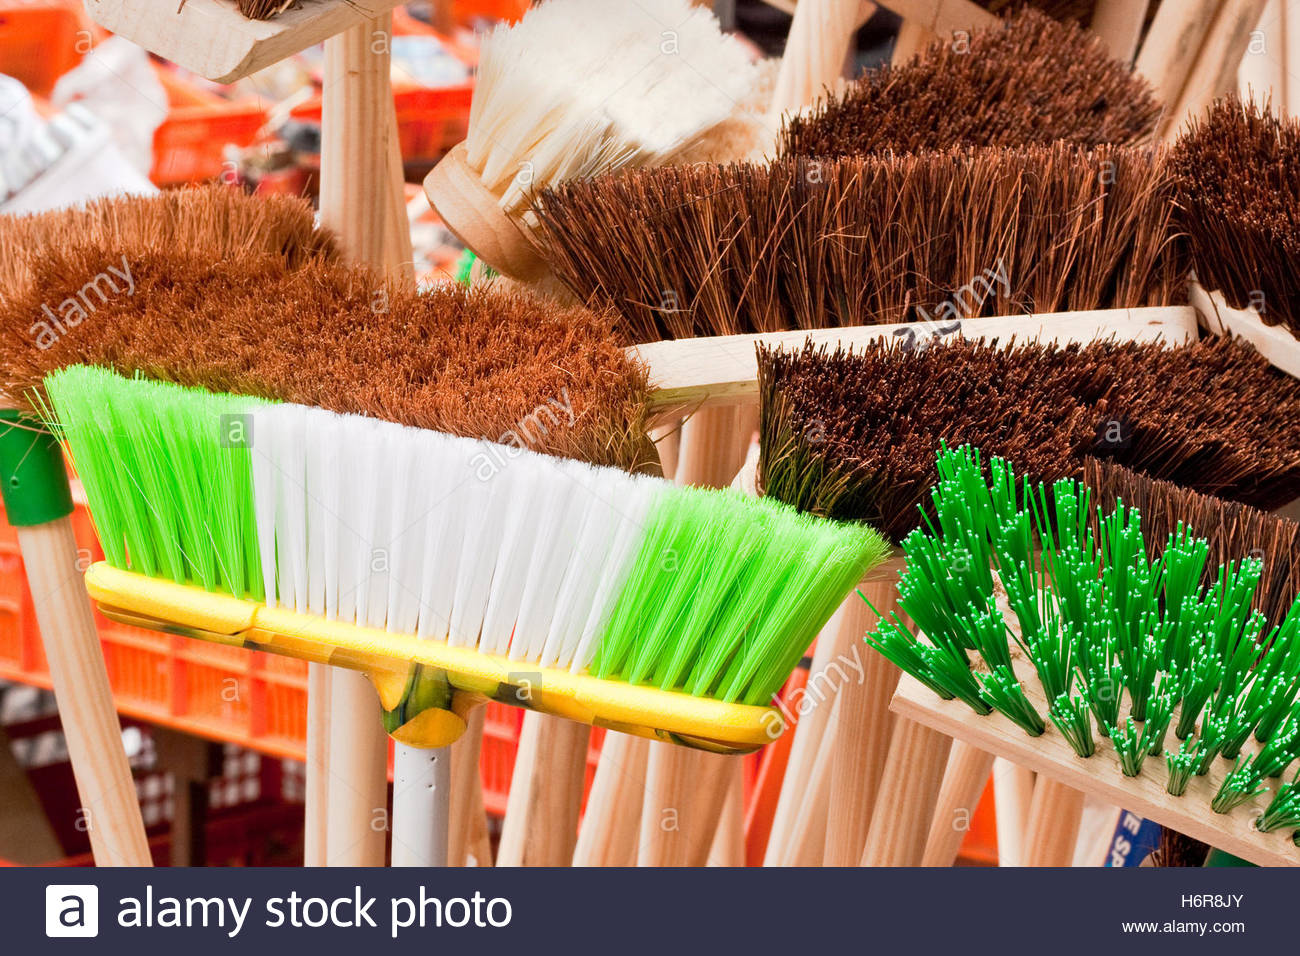 blue house building tool isolated green soft spring bouncing bounces hop skipping frisks jumping jump brush bristles - Stock Image